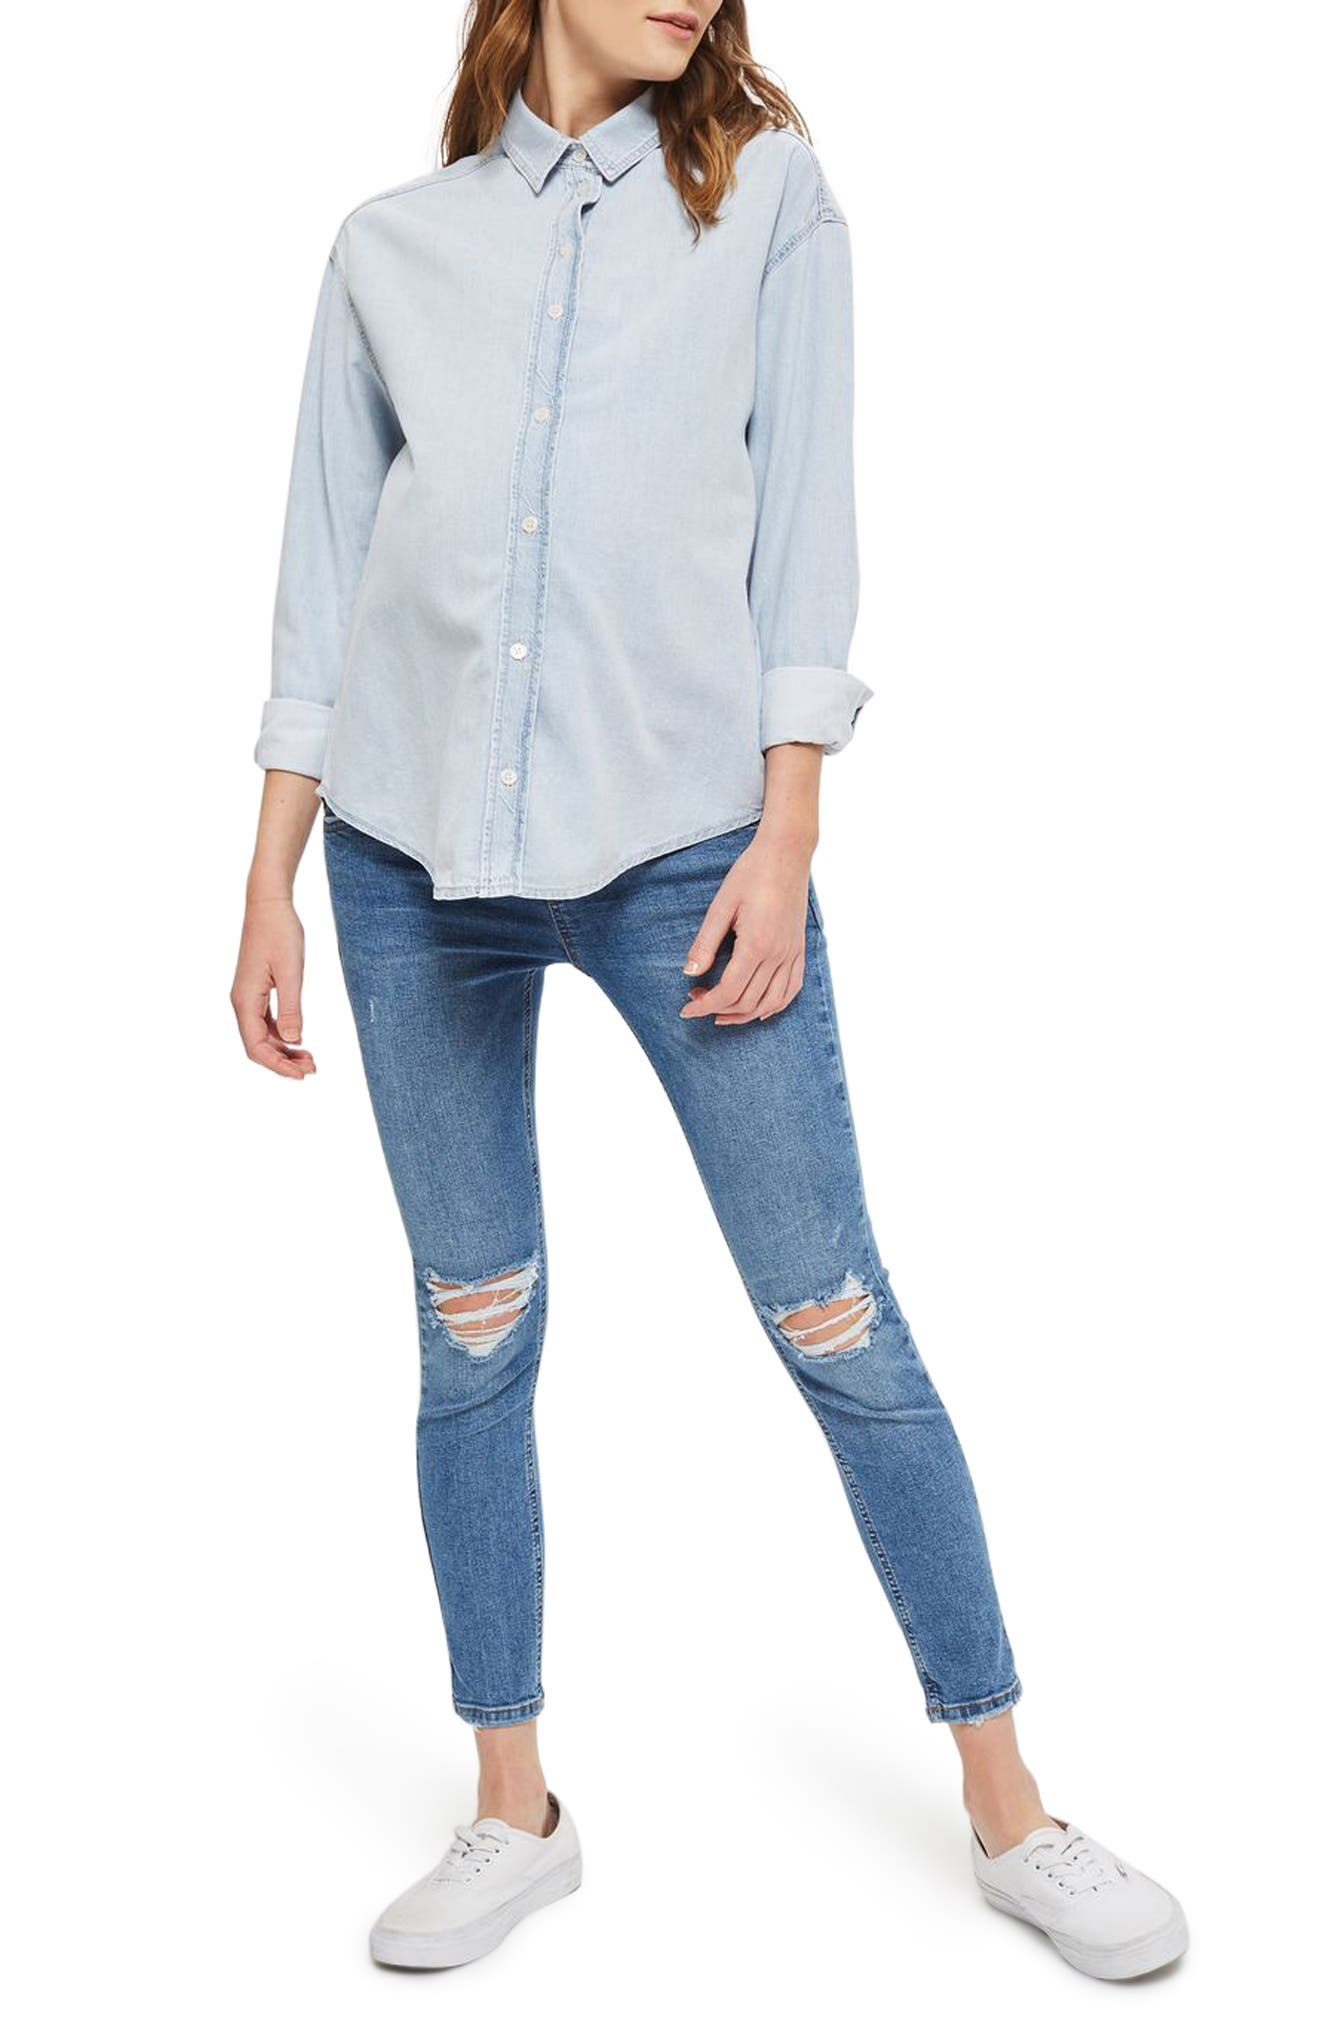 Topshop Elton Bleach Denim Maternity Shirt